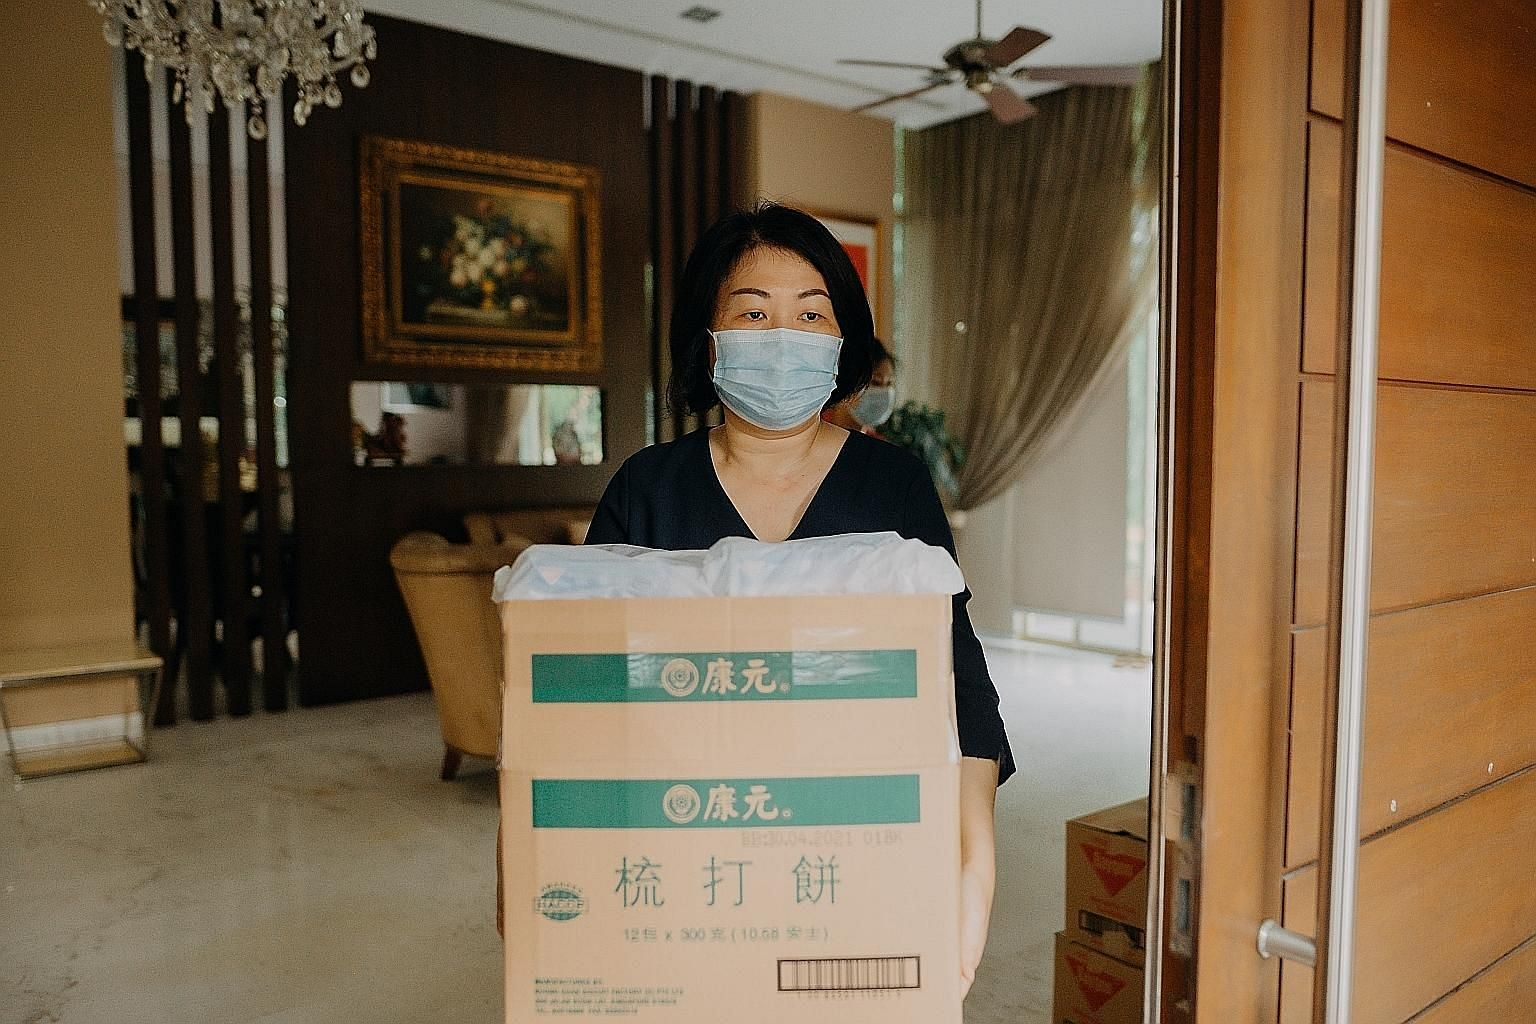 Volunteer Annie Gan helped to pack items for migrant workers who have been tested for the coronavirus and have been given the all-clear before they moved into temporary accommodation in Kismis Avenue.